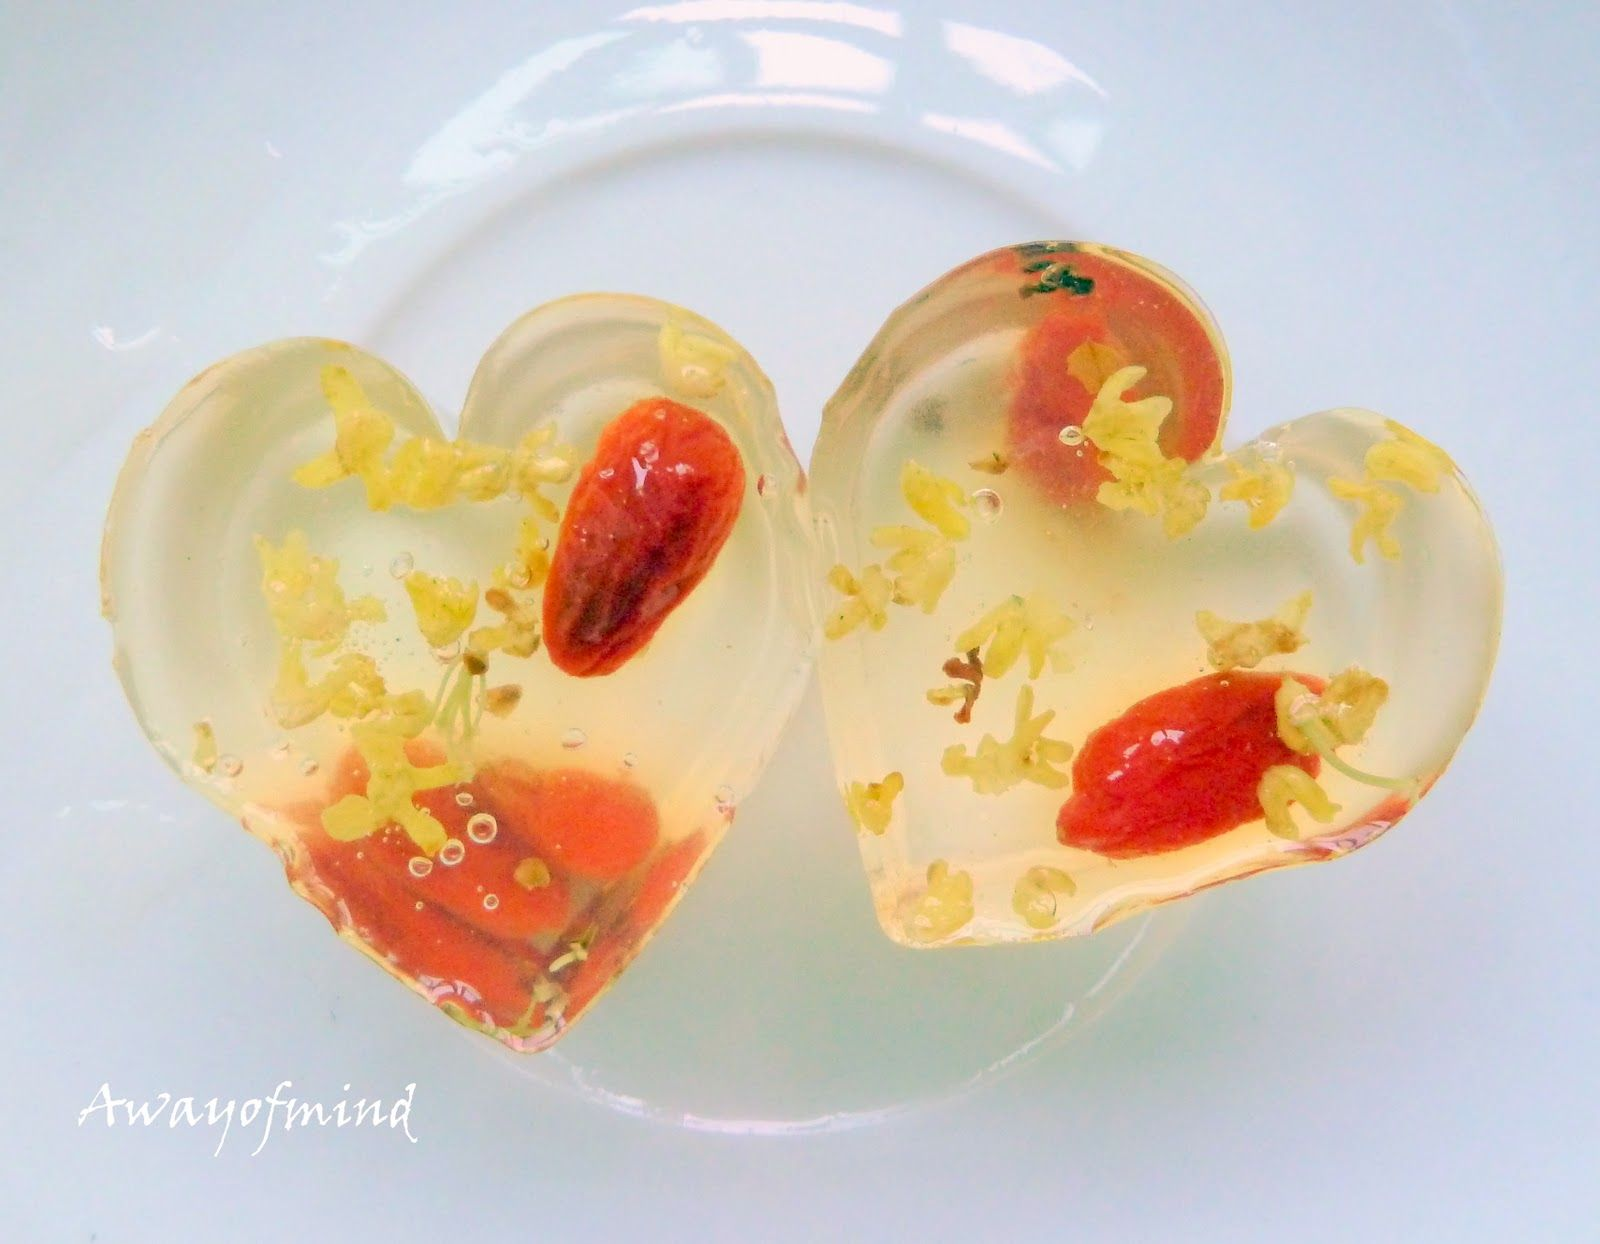 Awayofmind bakery house osmanthus jelly jellies for Asian cuisine dessert